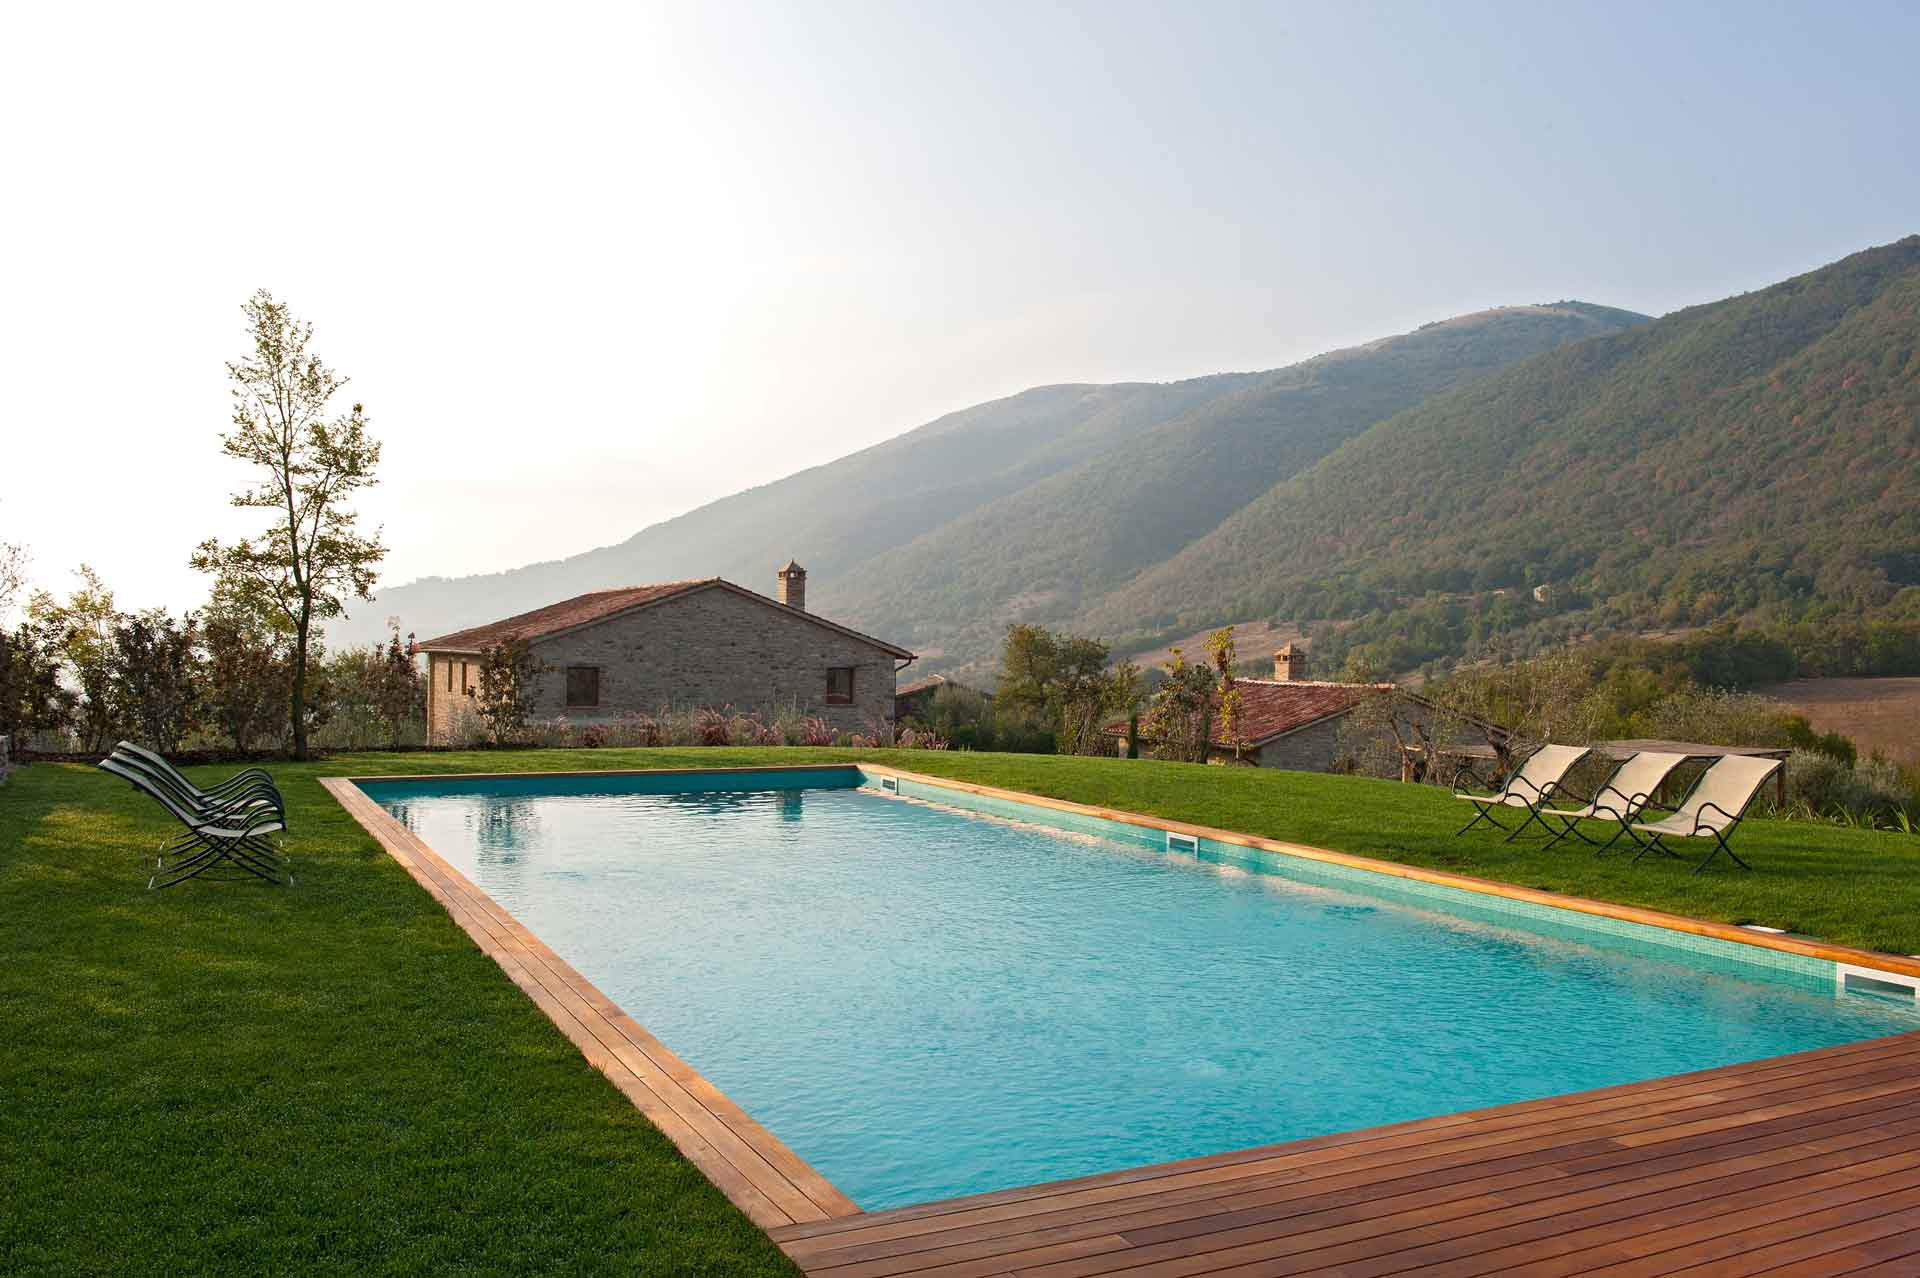 Villa in Umbria - Luxury villas in Umbria